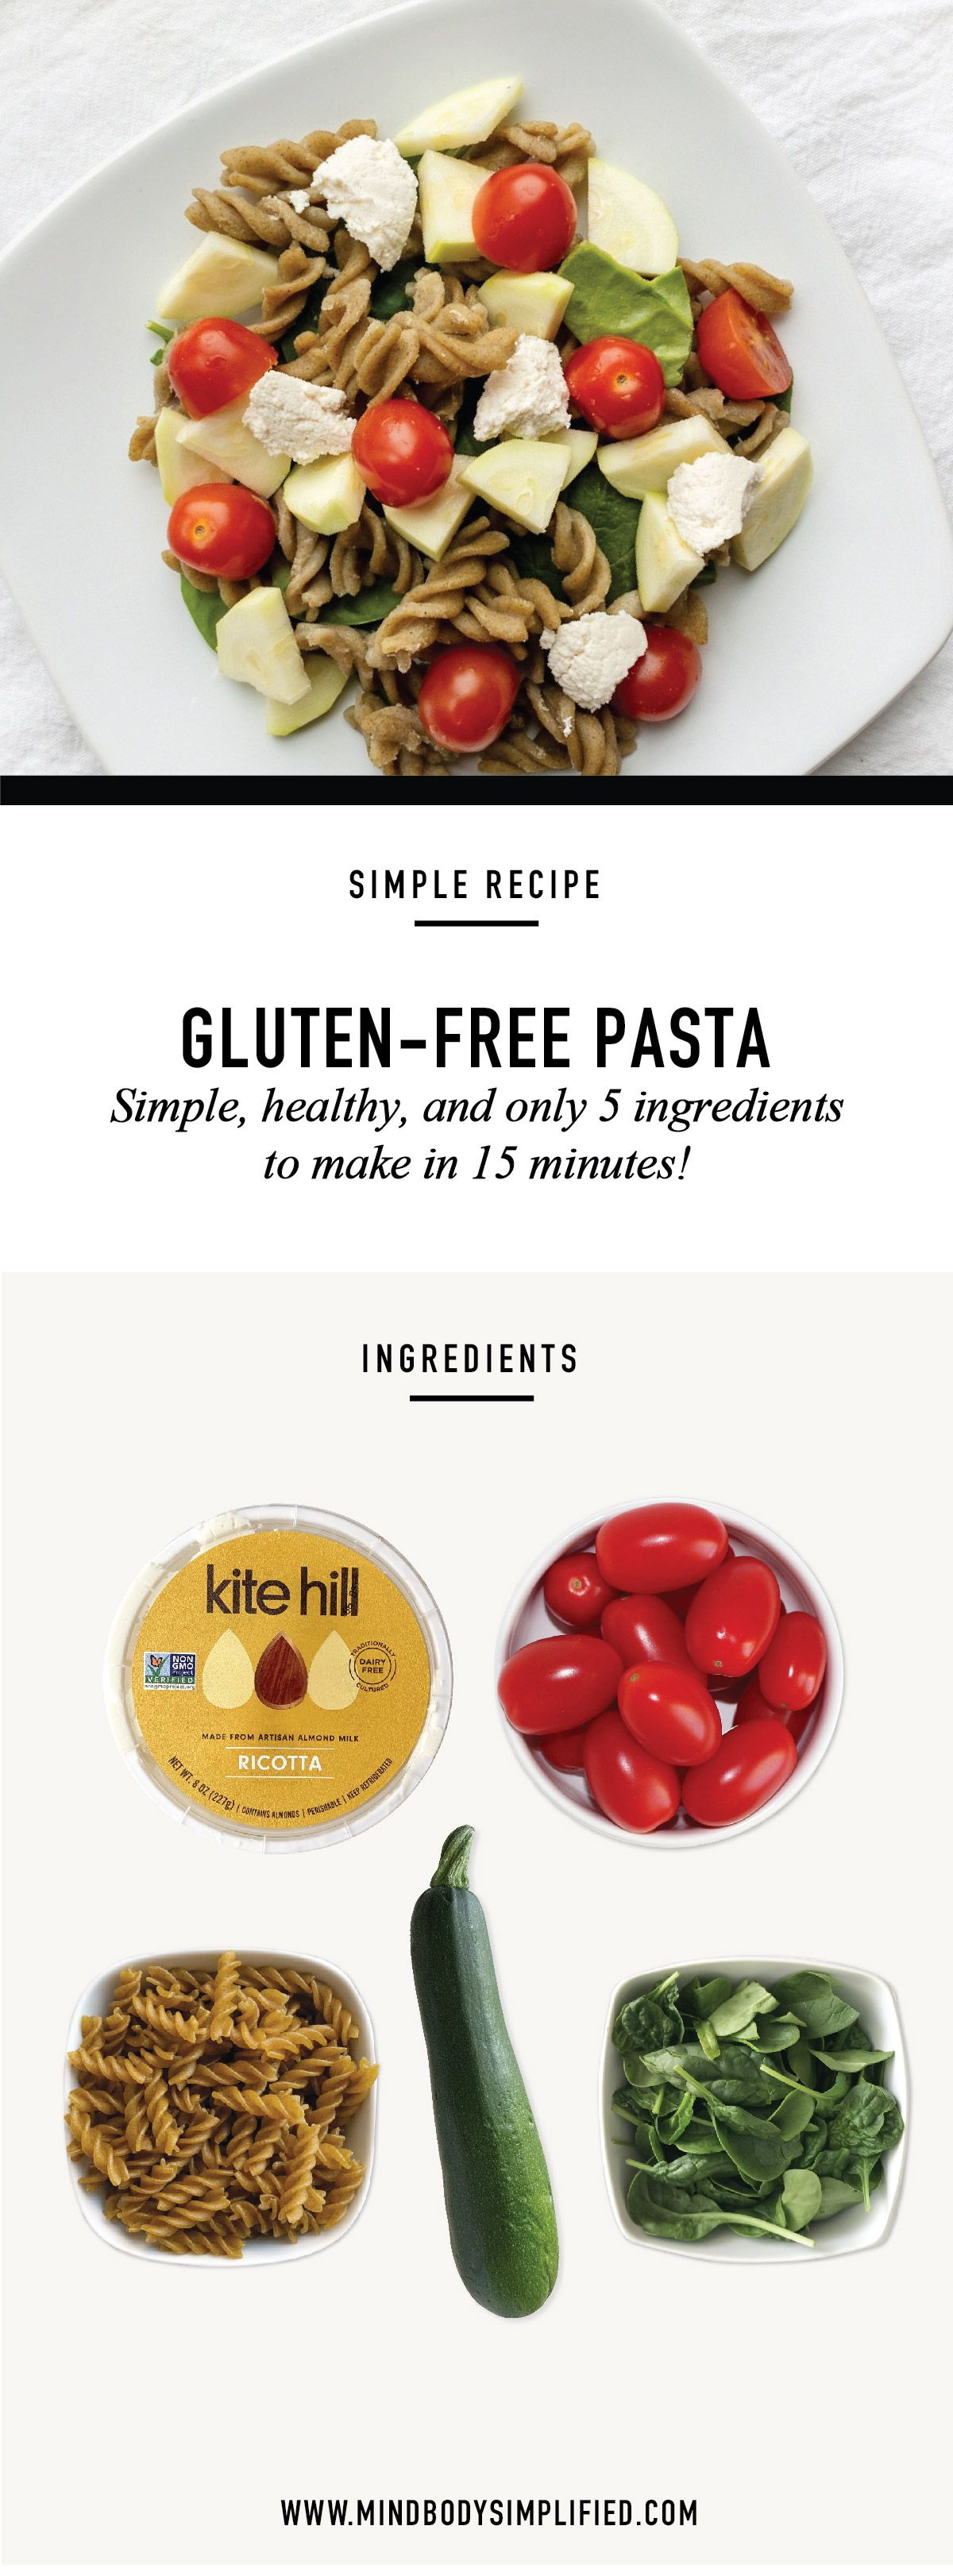 Glutenfree pasta a fast healthy 5 ingredient meal that